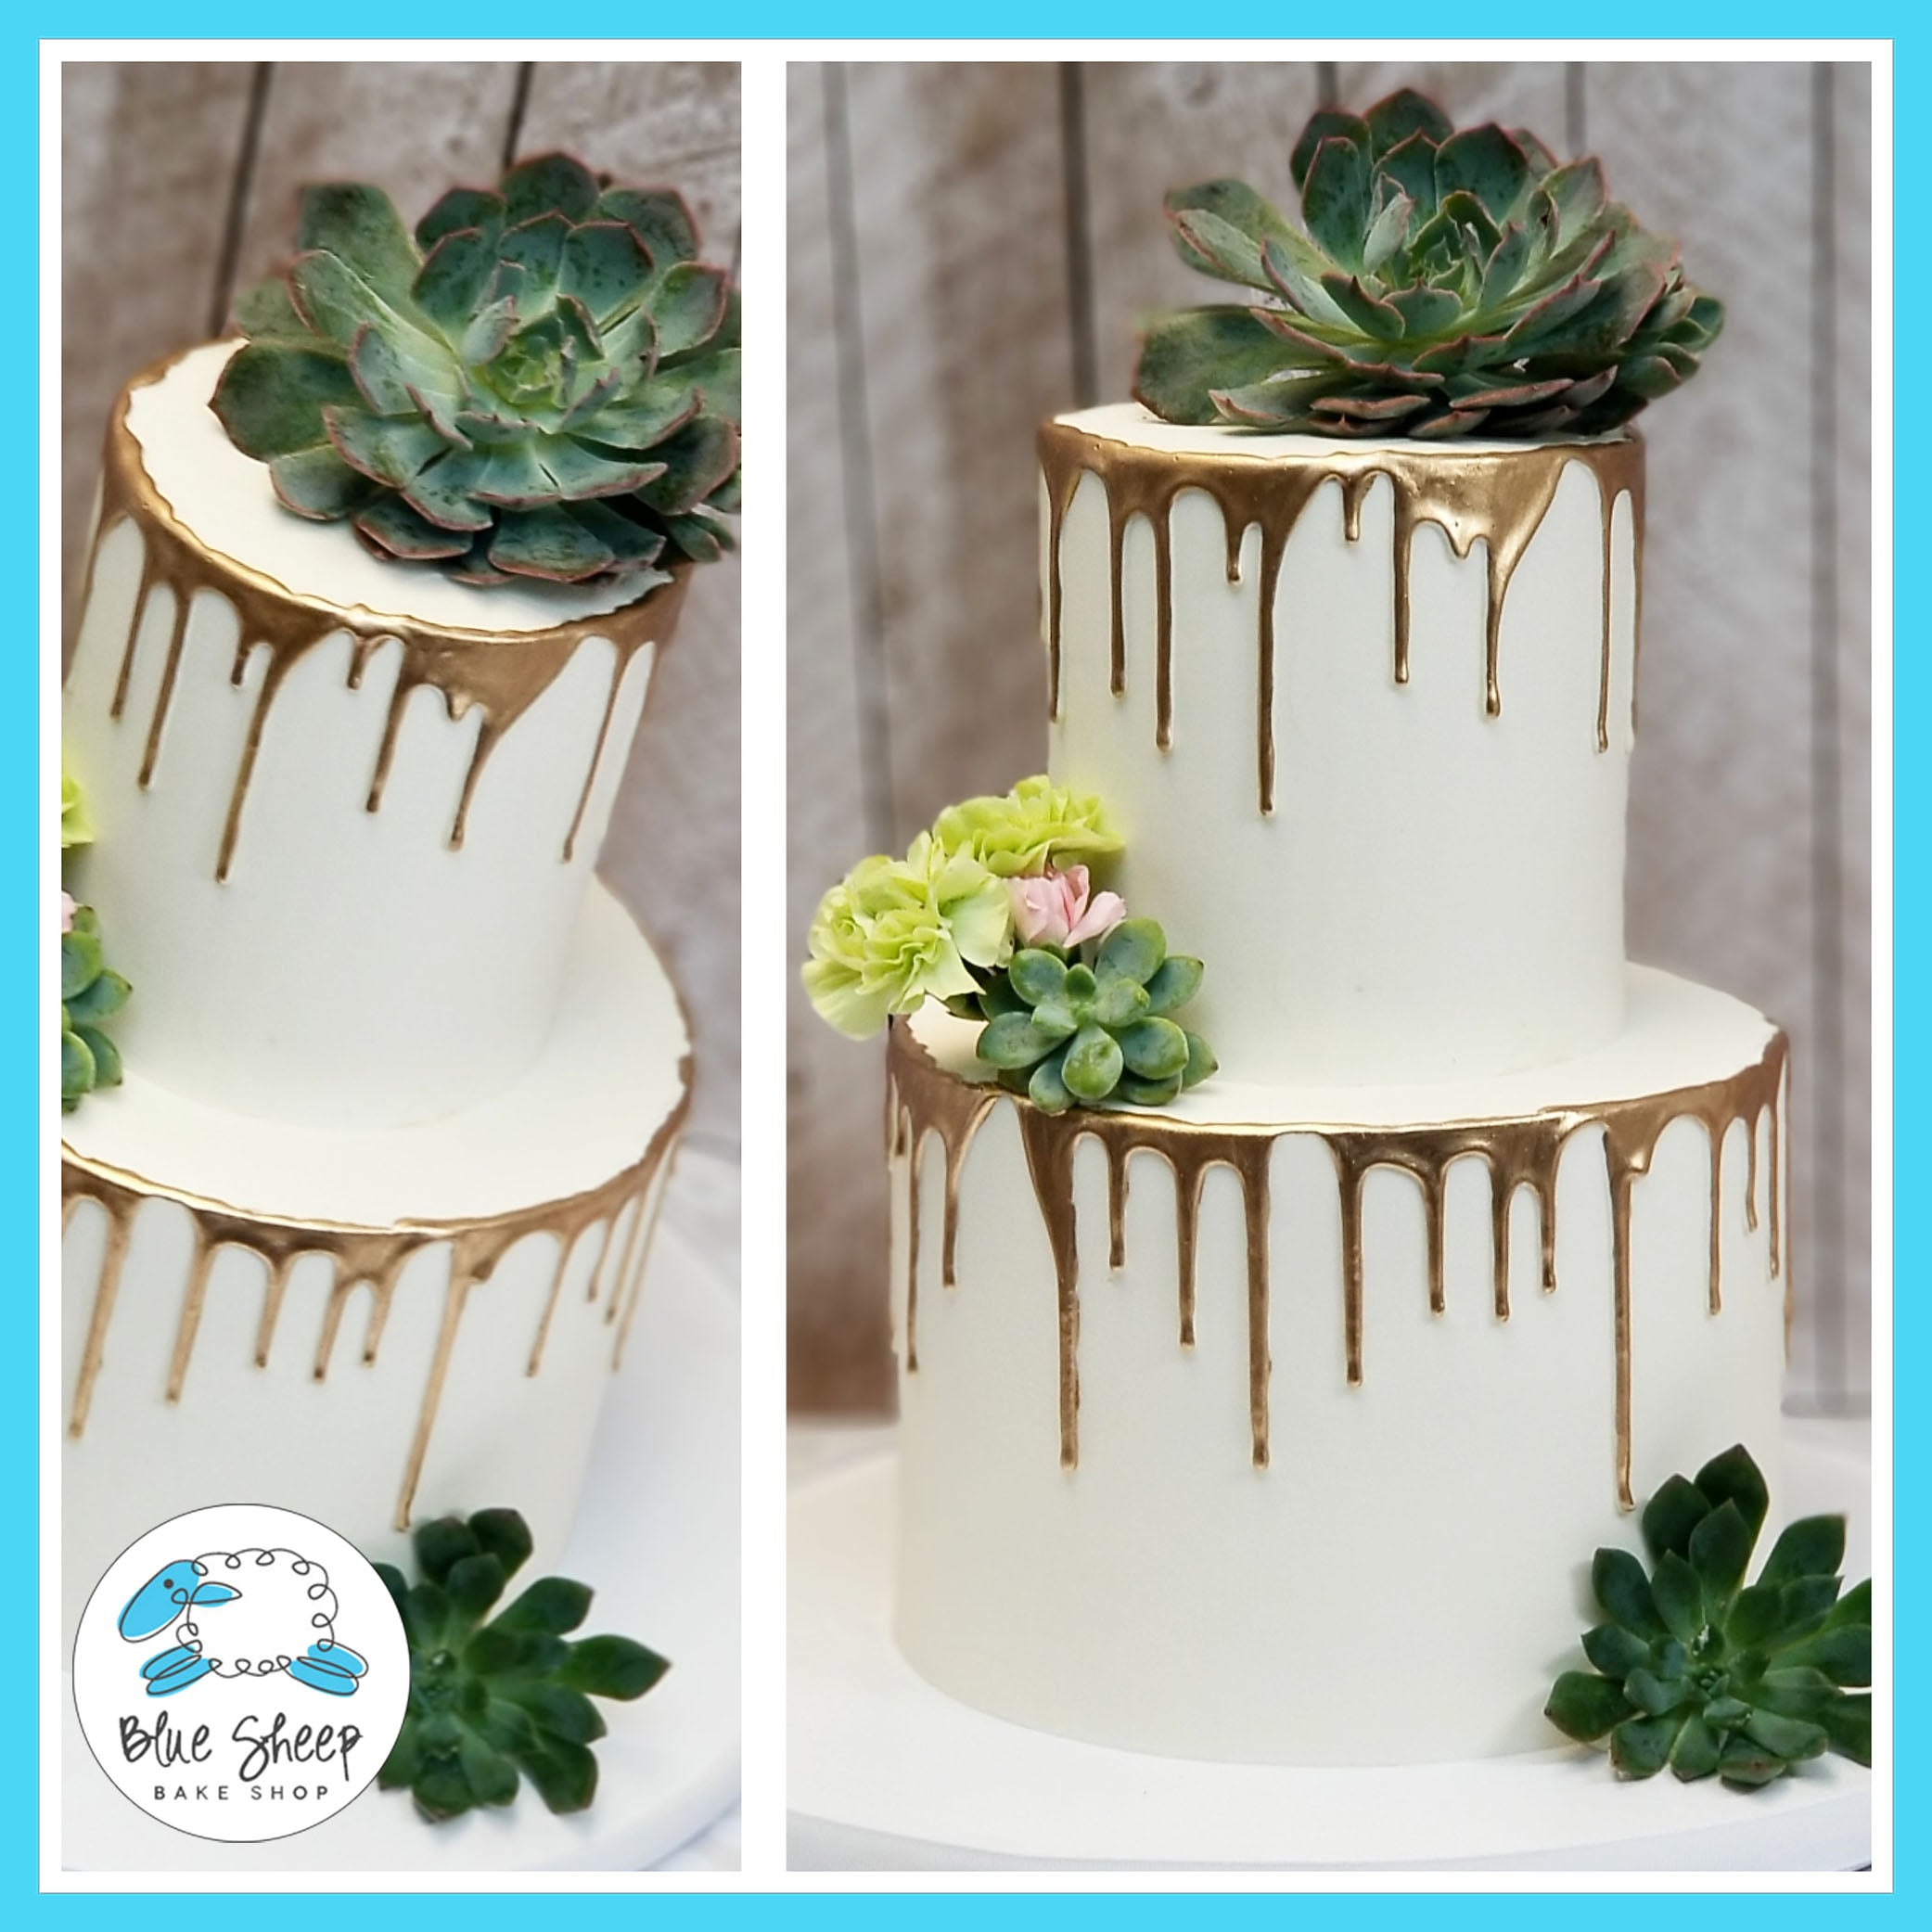 Gold Drip Wedding Cake With Succulents Nj Blue Sheep Bake Shop